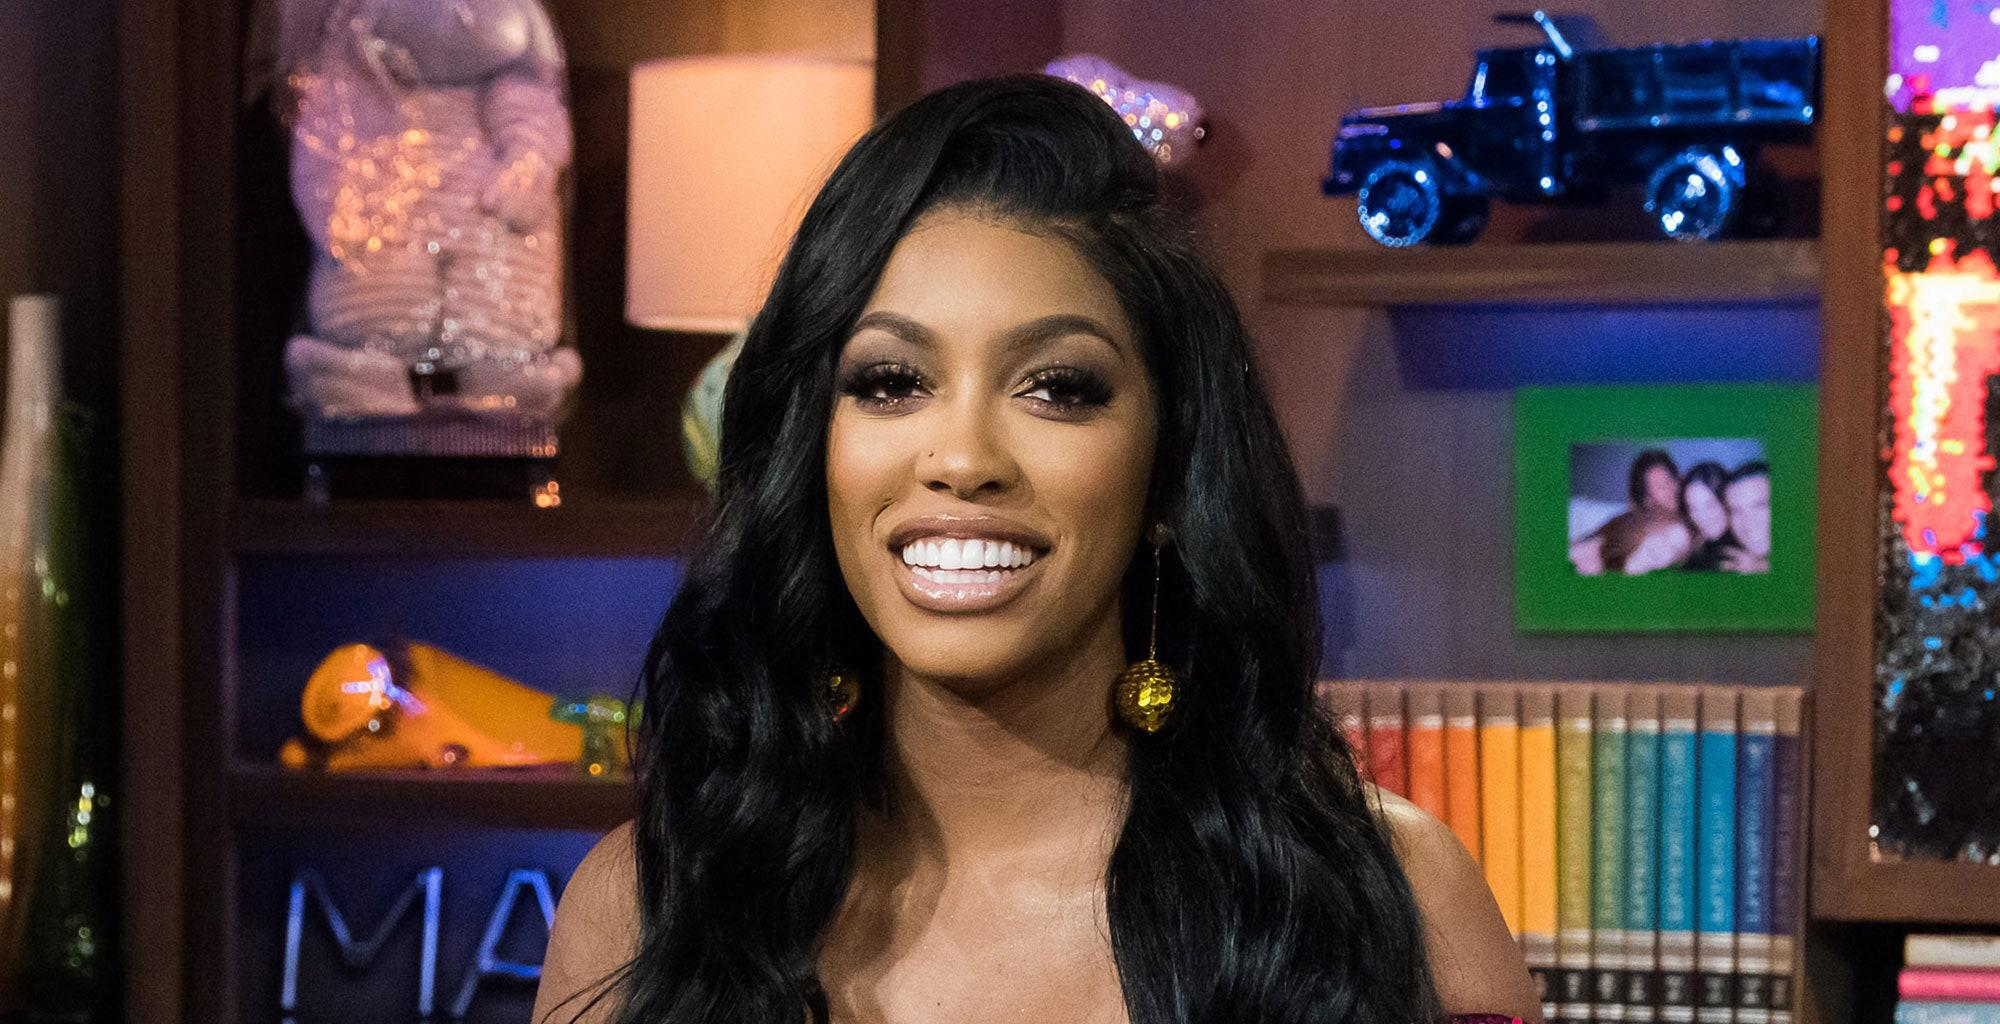 Porsha Williams Shares A Photo Featuring Shamea Morton And Their Baby Girls - See It Here